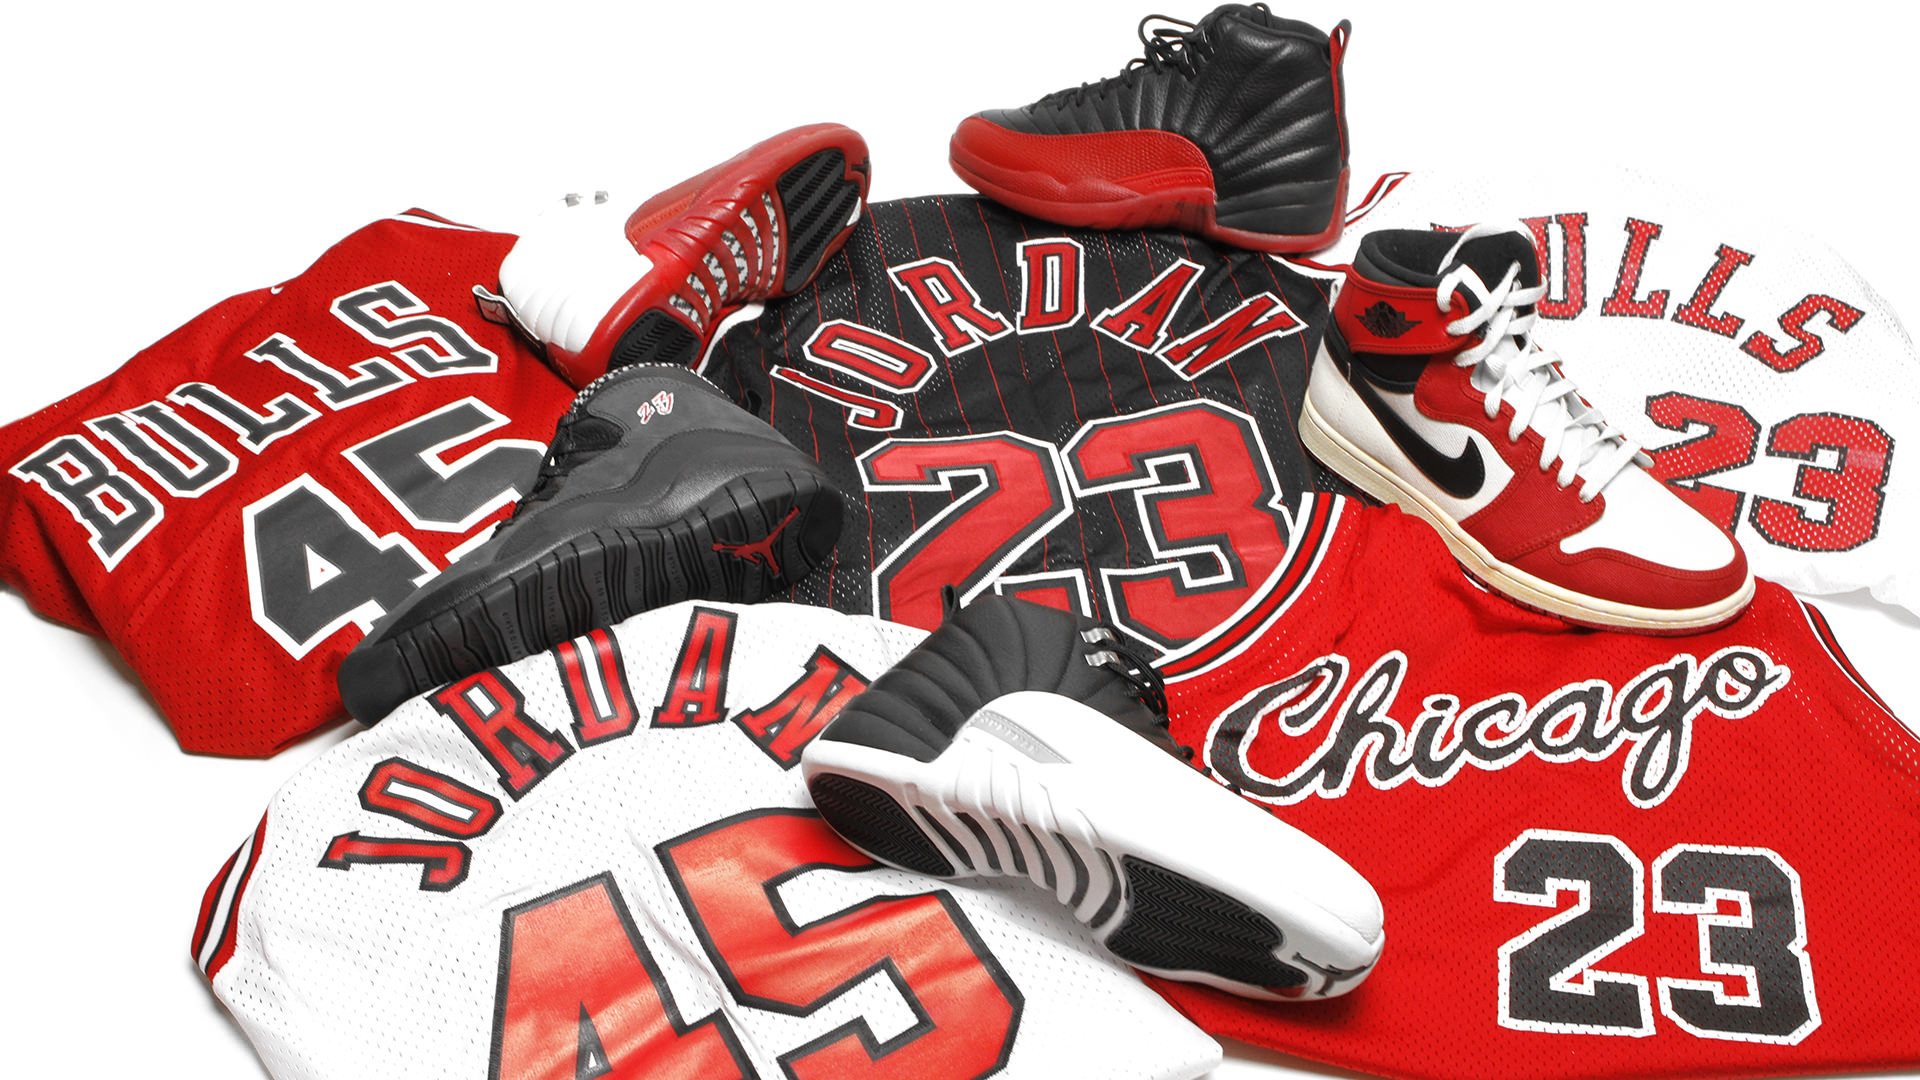 1920x1080 Michael Jordan Chicago Bulls Jersey Wallpaper Id #6978 | Frenzia.. WERE A  JORDEN